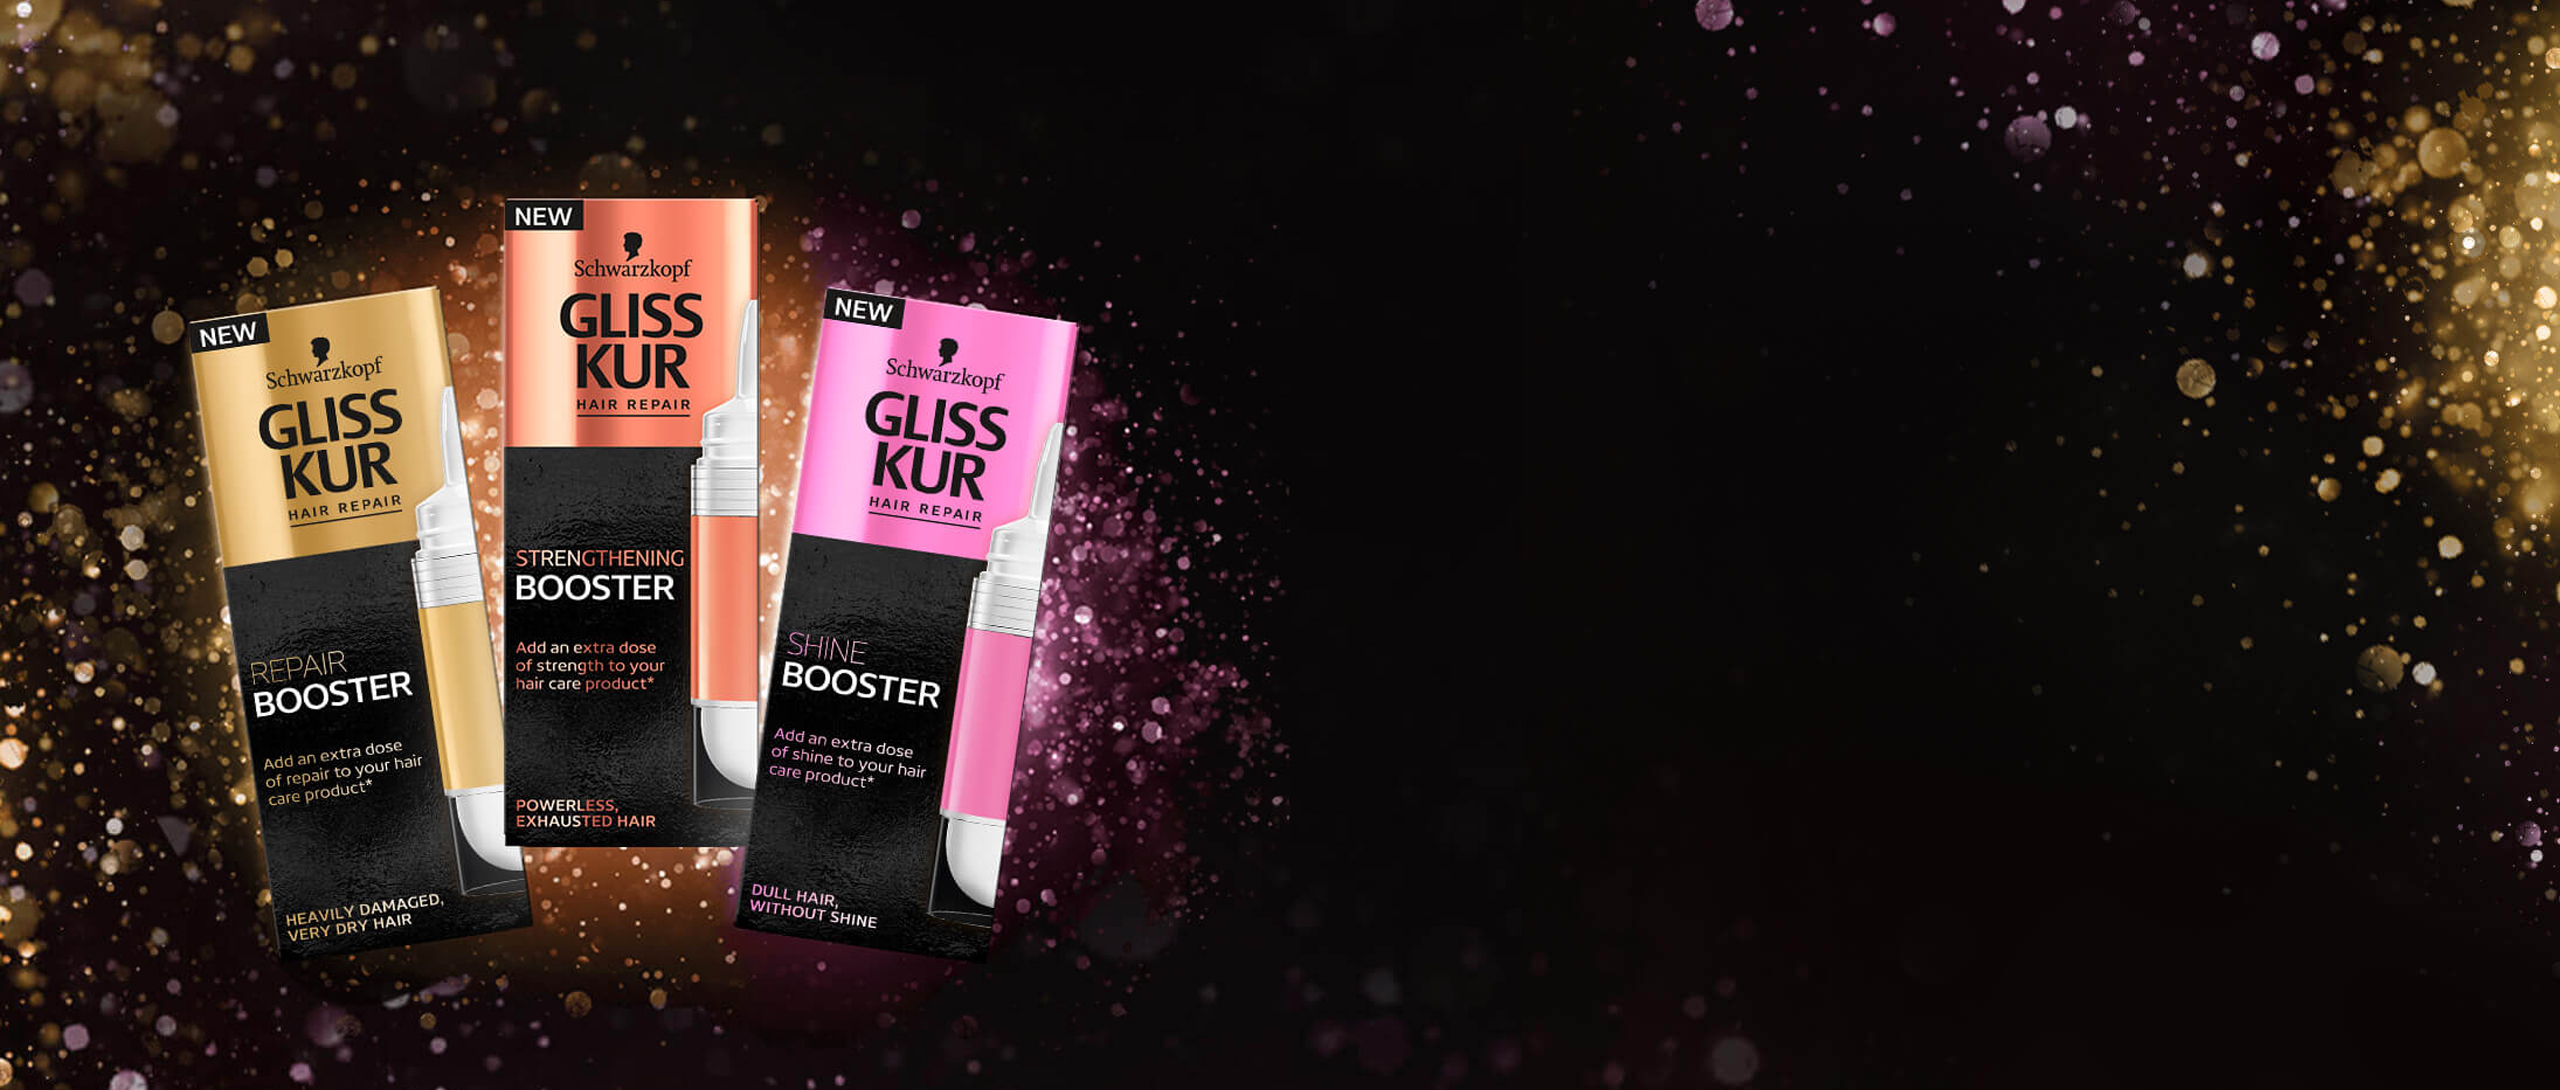 Gliss Kur - Beauty Booster